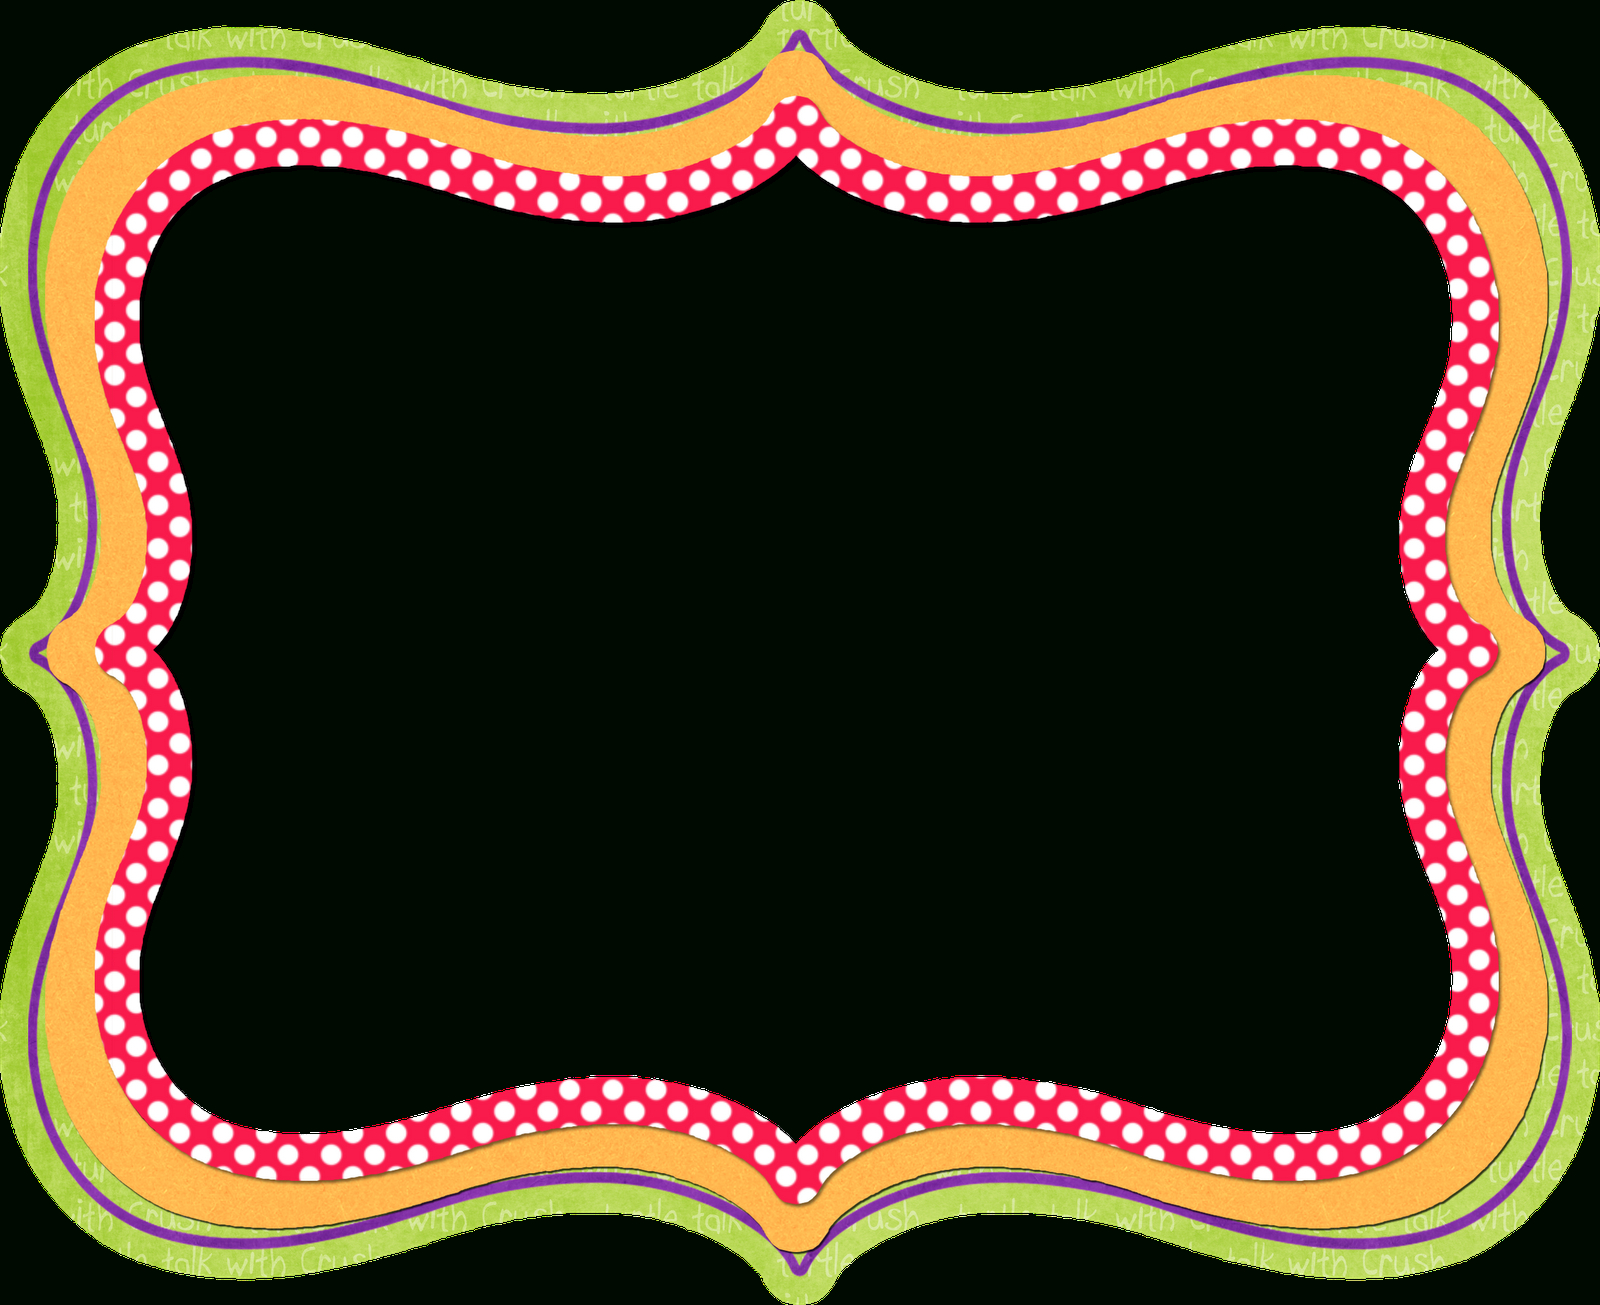 Free Printable Cliparts Borders, Download Free Clip Art, Free Clip - Free Printable Borders For Cards